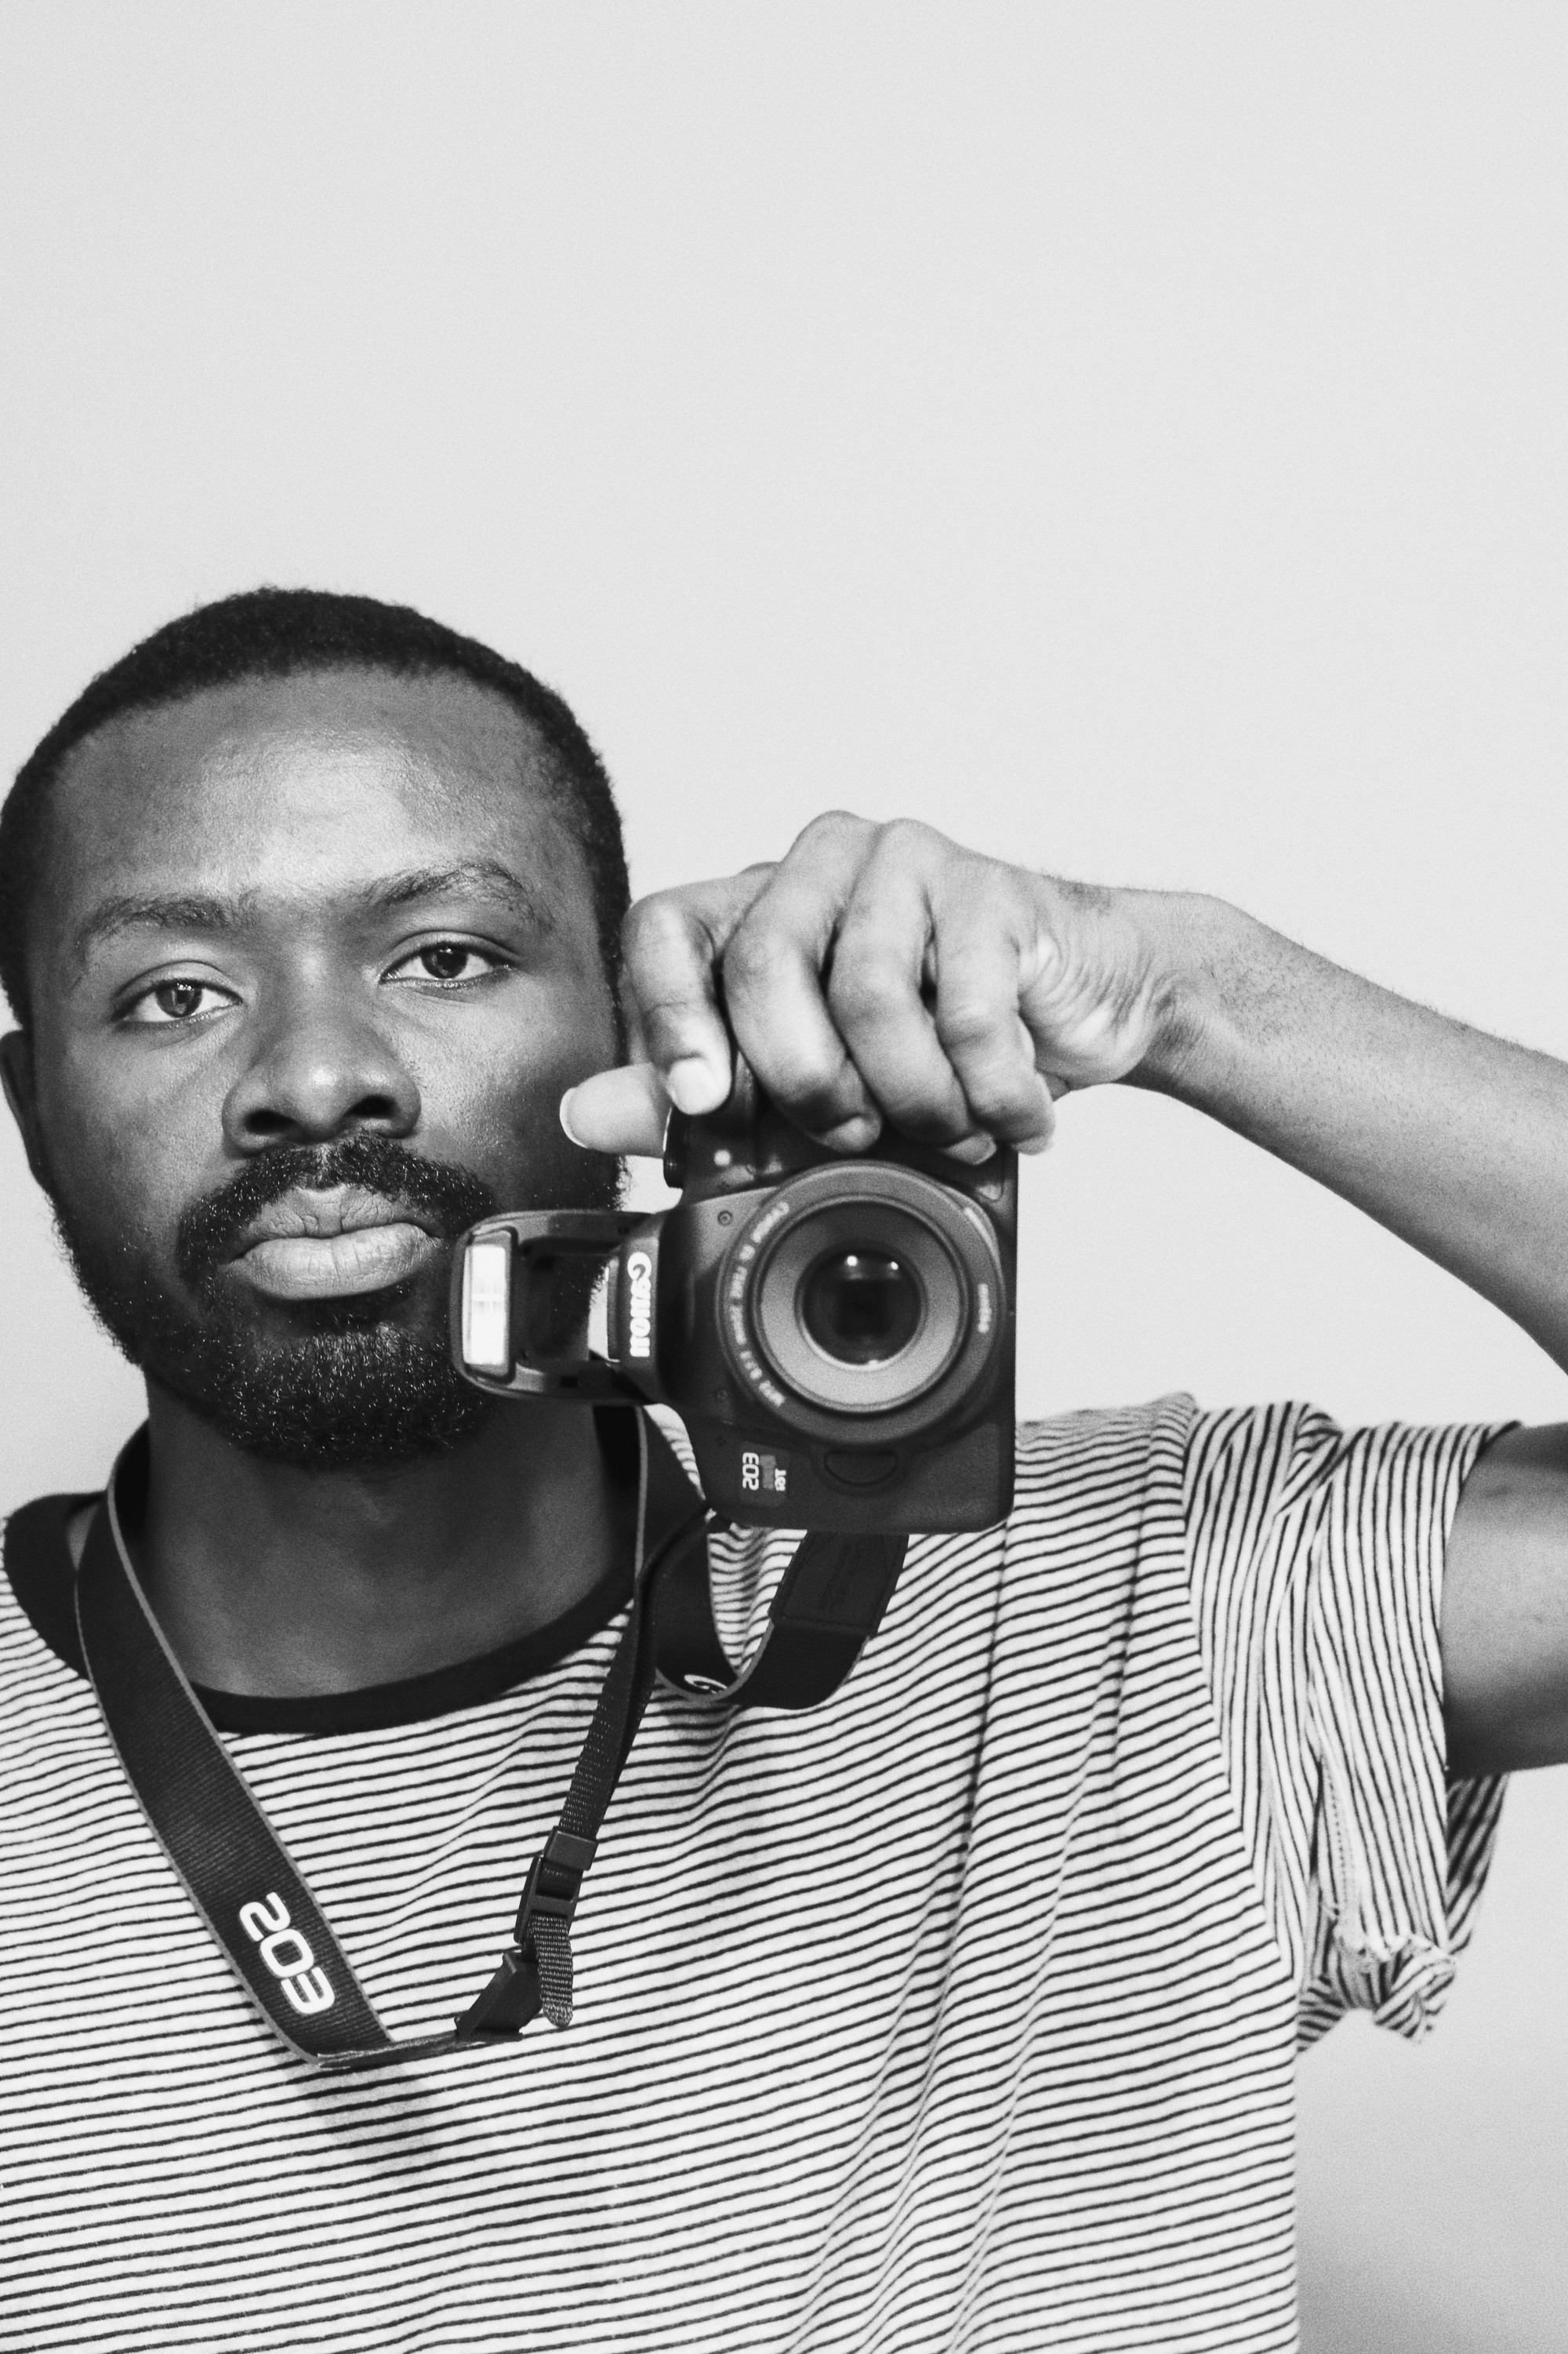 7 strategies to live a more authentic self—black and white still photo of man with camera